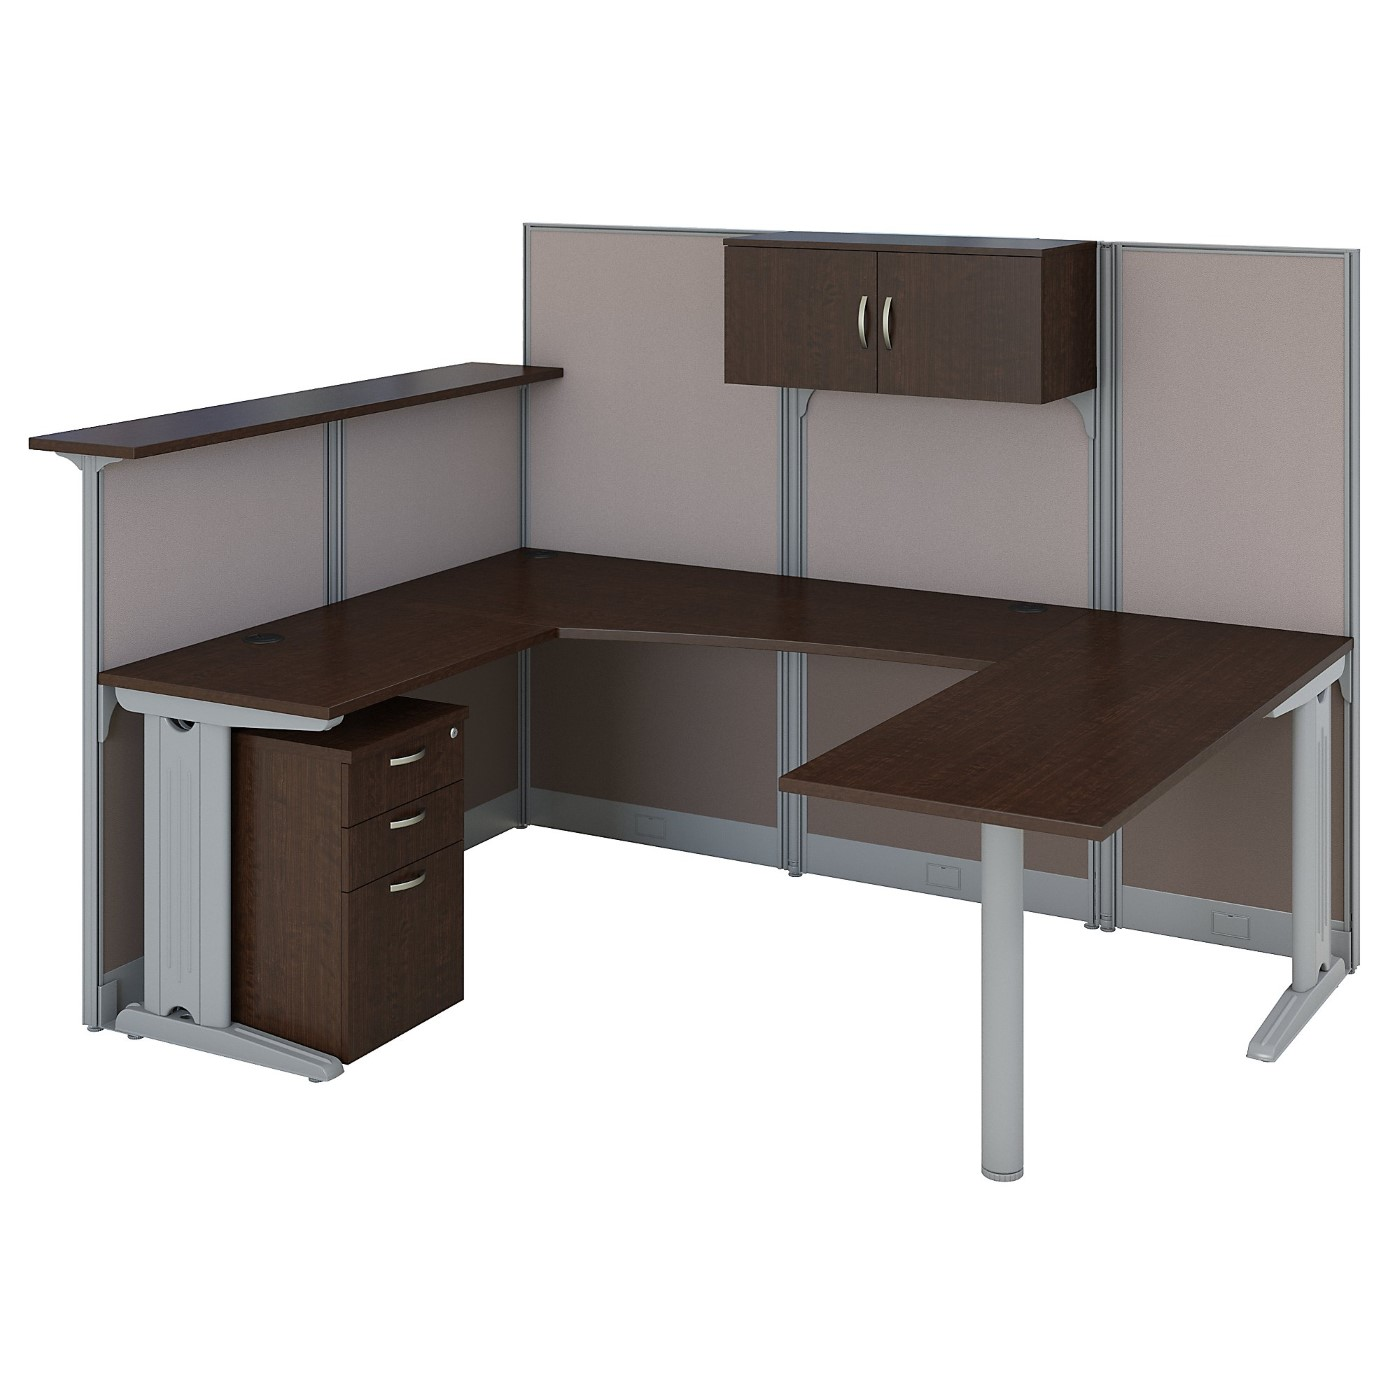 BUSH BUSINESS FURNITURE OFFICE IN AN HOUR U SHAPED RECEPTION DESK WITH STORAGE. FREE SHIPPING SALE DEDUCT 10% MORE ENTER '10percent' IN COUPON CODE BOX WHILE CHECKING OUT.